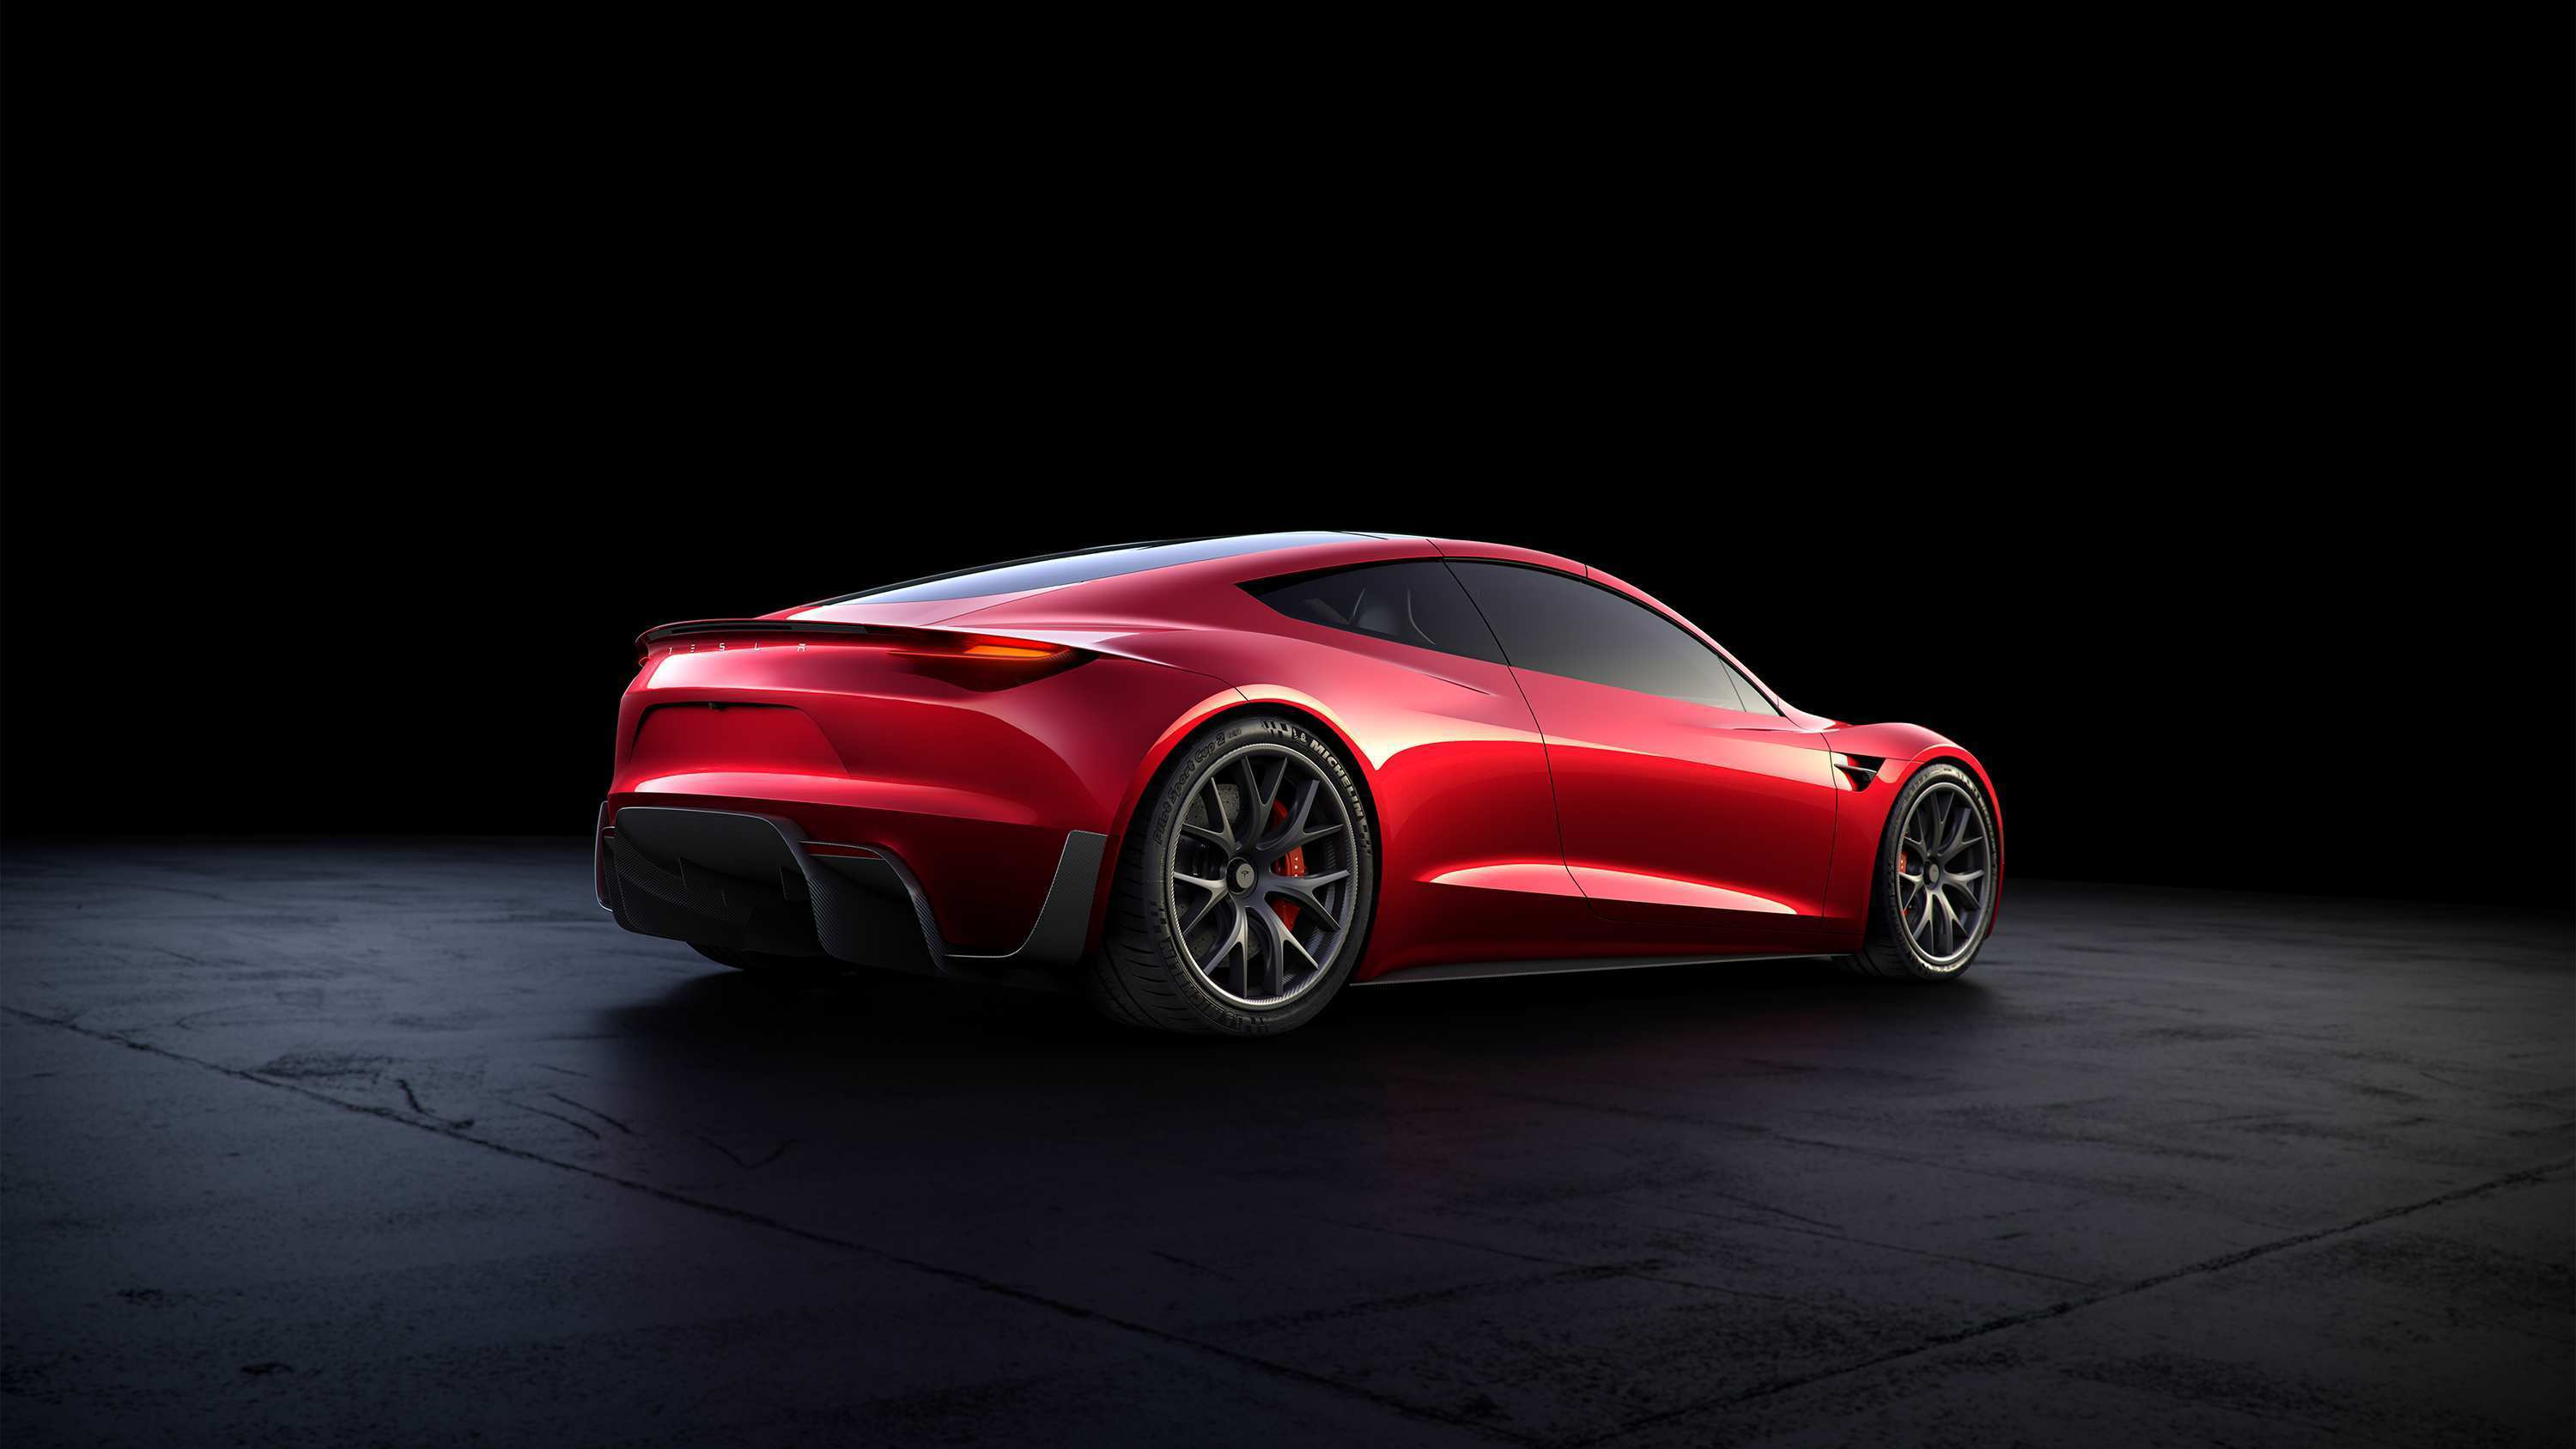 75 All New 2020 Tesla Roadster Weight 3 Ratings by 2020 Tesla Roadster Weight 3